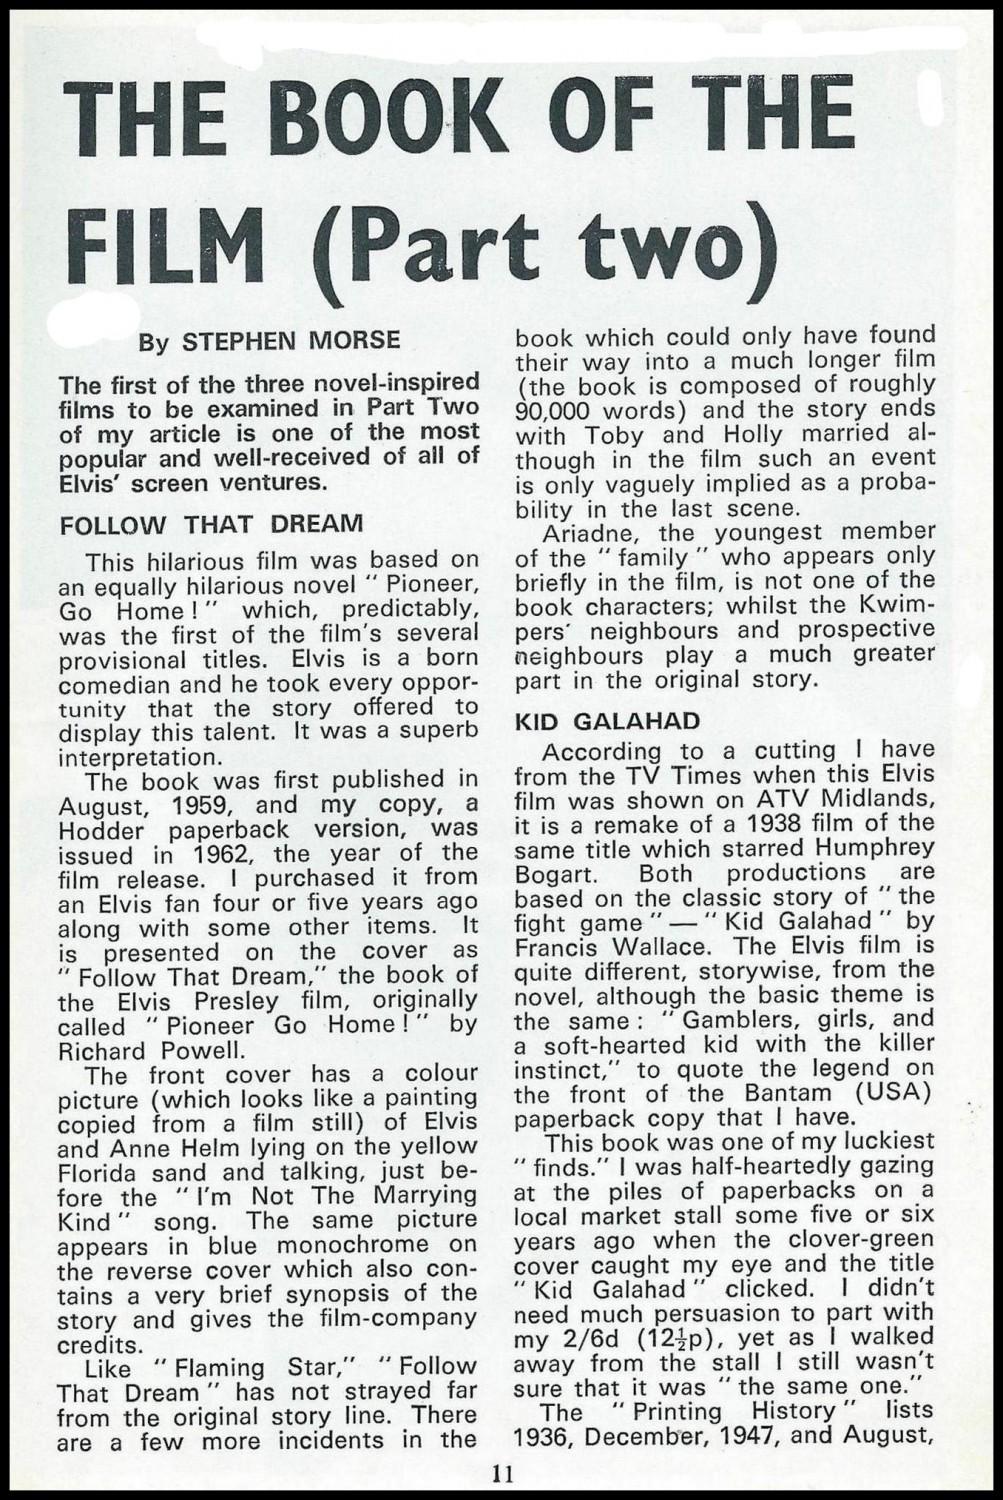 The Book Of The Film Part 2 (February 1972) a